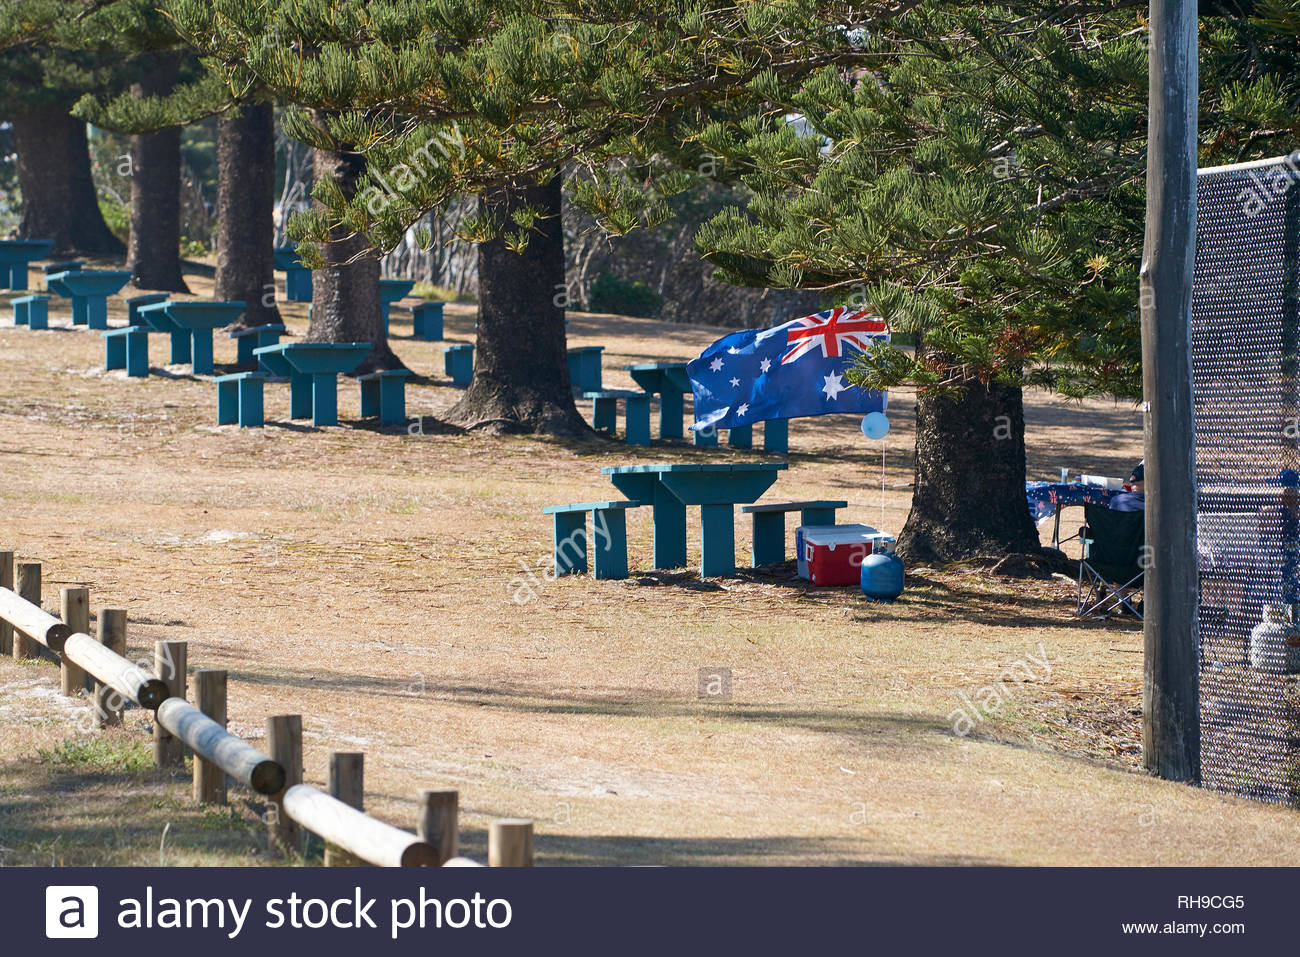 An Aussie flag flies in the breeze at a beachside barbecue...picnic tables and pines...on Australia Day - or Invasion Day - in Yamba, NSW, Australia. - Stock Image